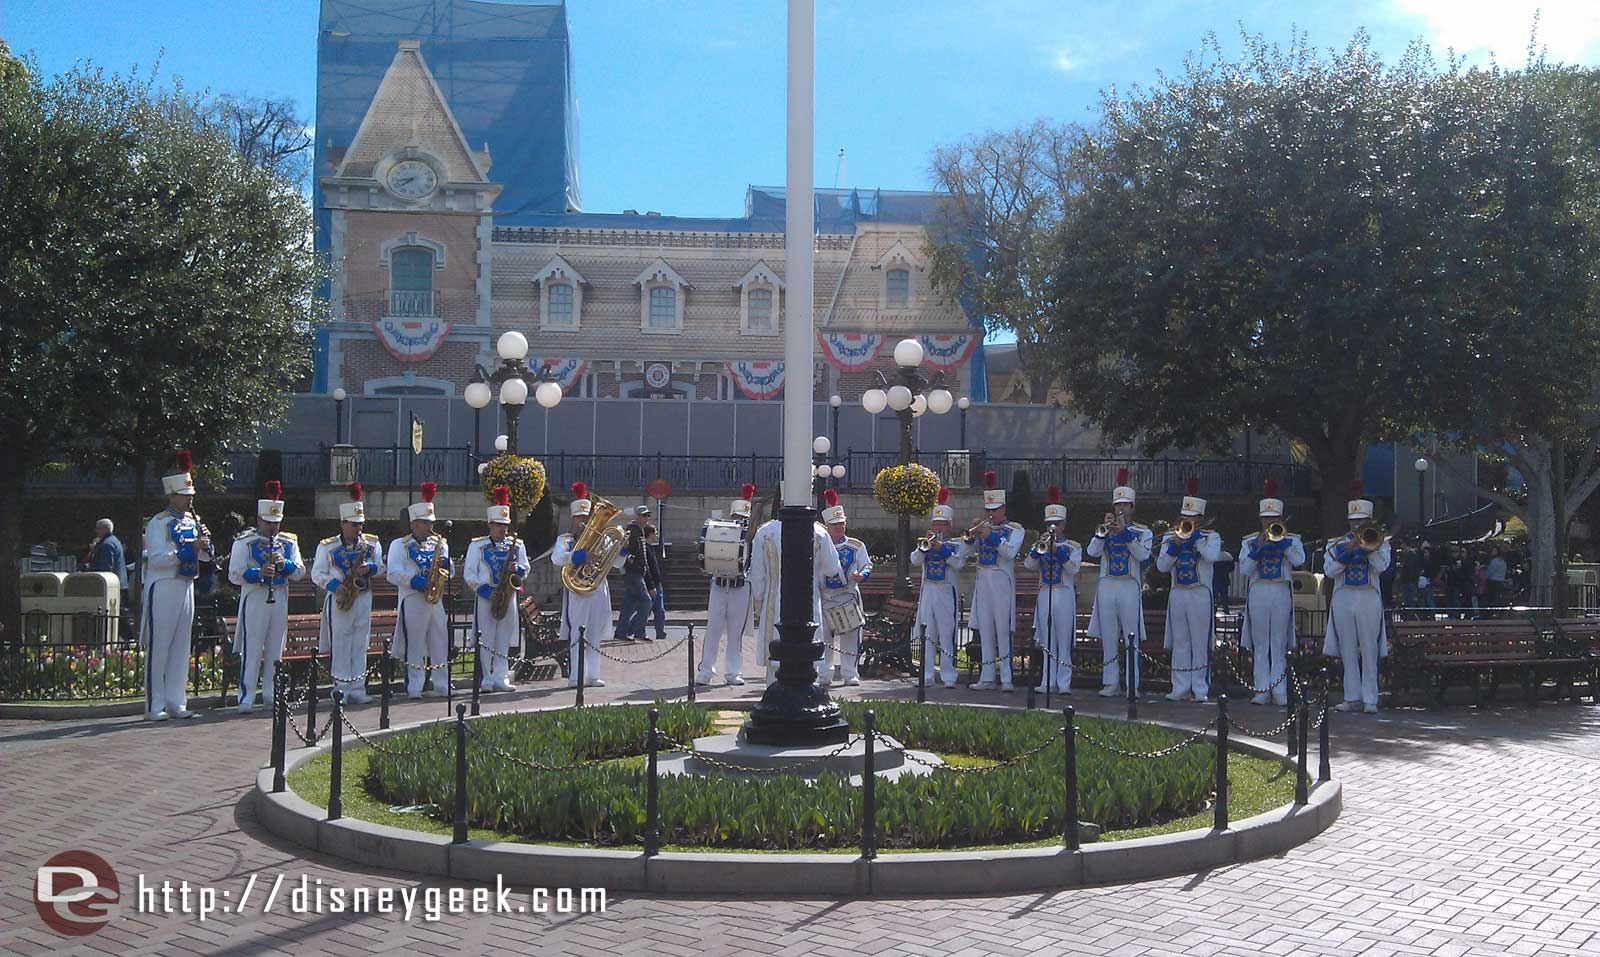 The Disneyland Band arriving in Town Square for a concert